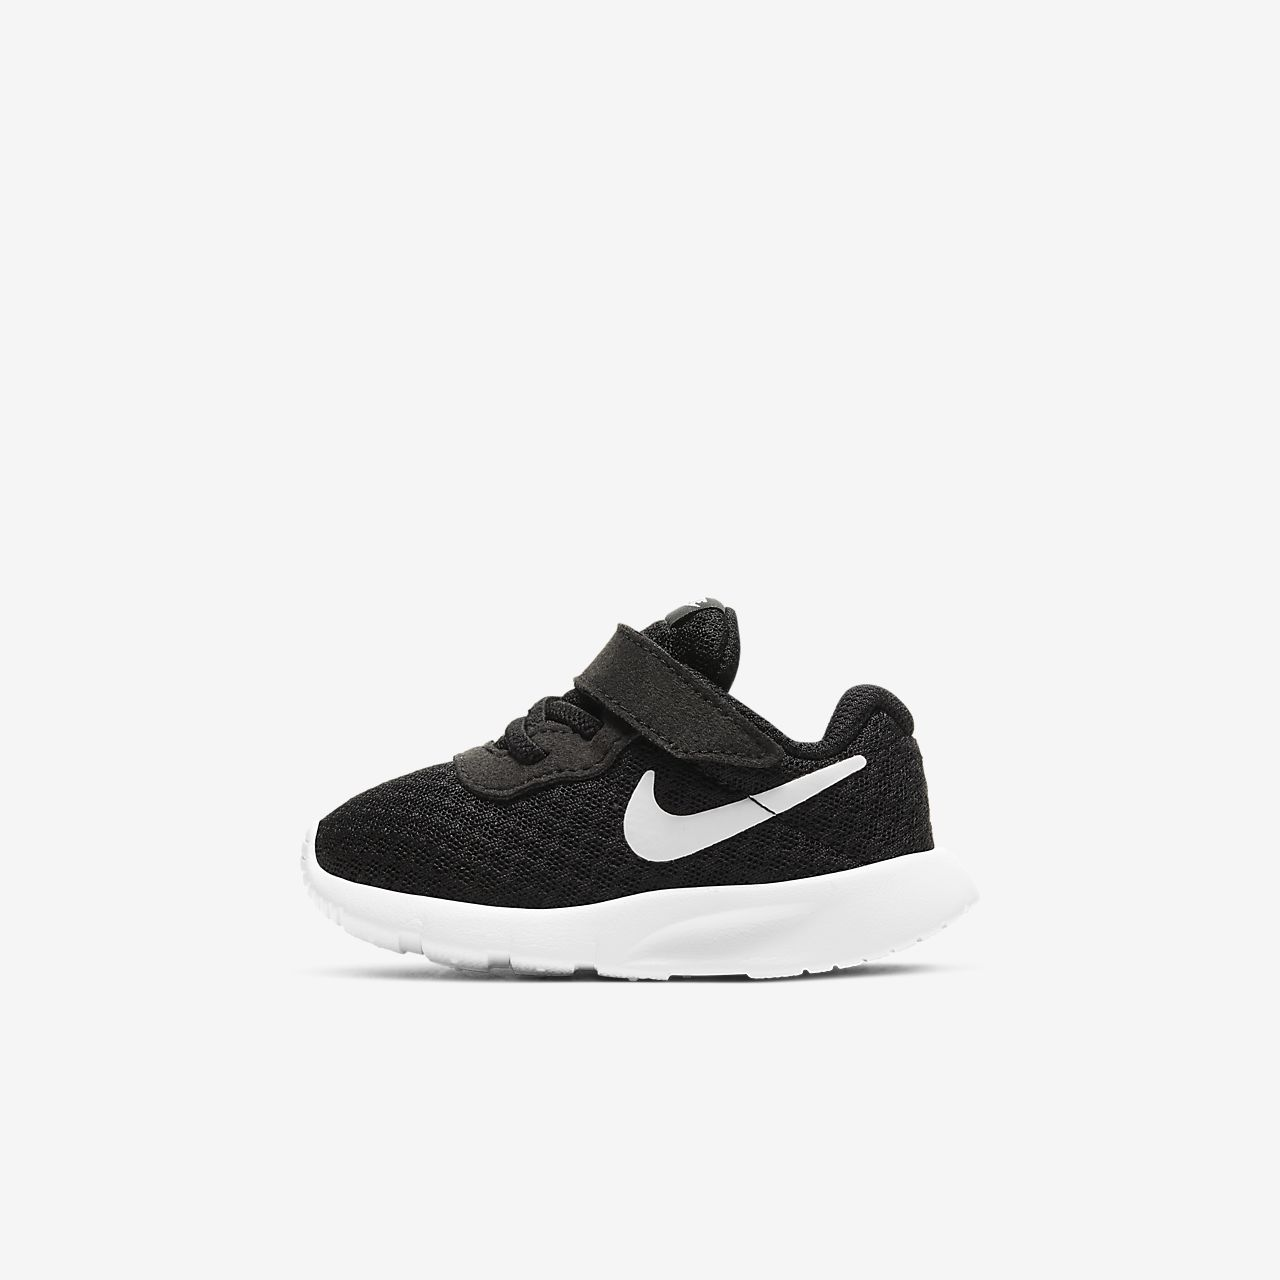 online store 20422 6229a Infant Toddler Shoe. Nike Tanjun